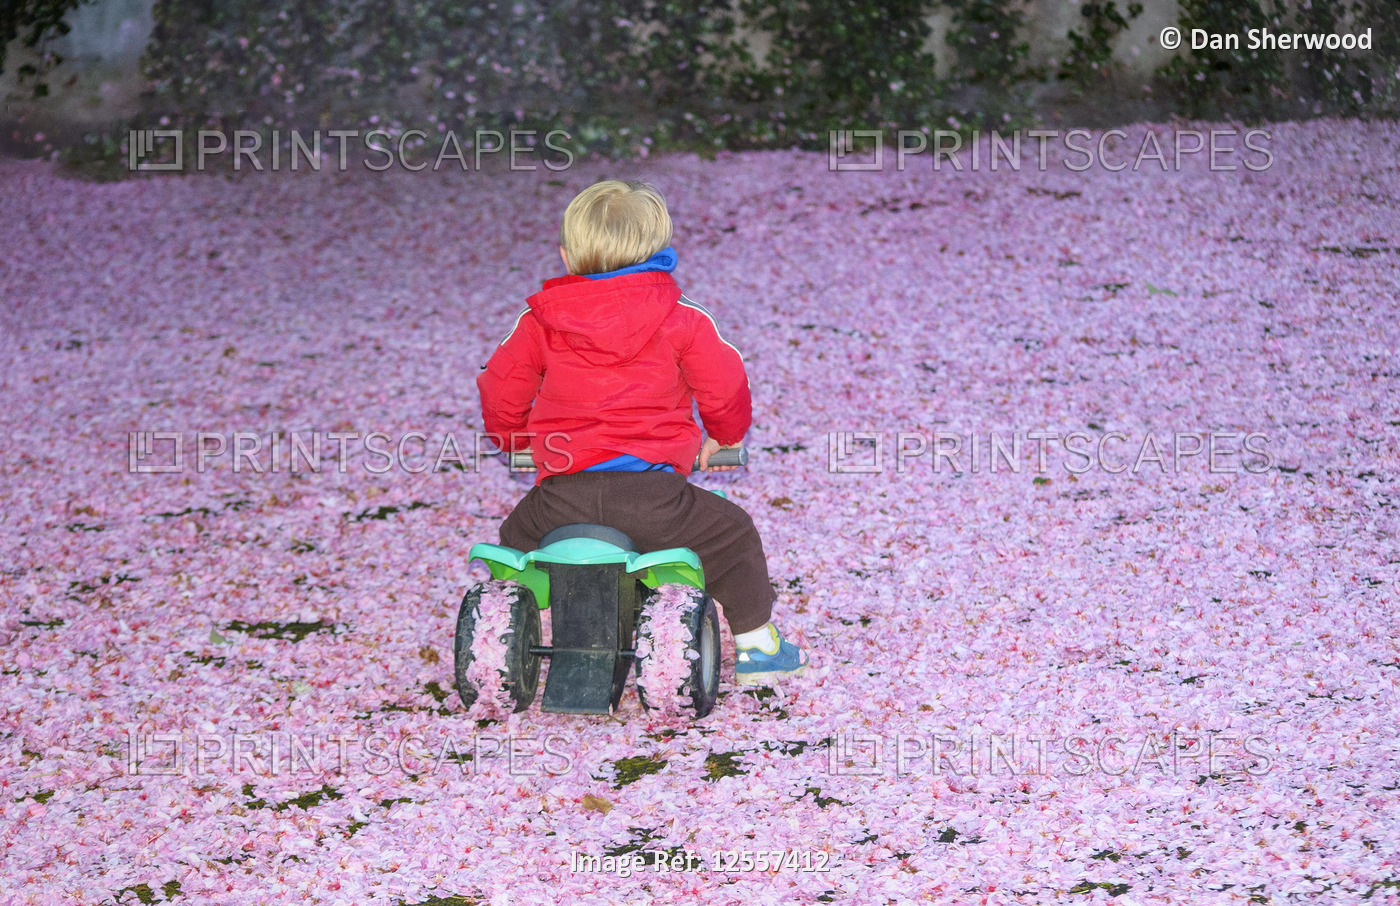 Toddler Riding a Toy ATV on a Carpet of Pink Petals - Portland, Oregon